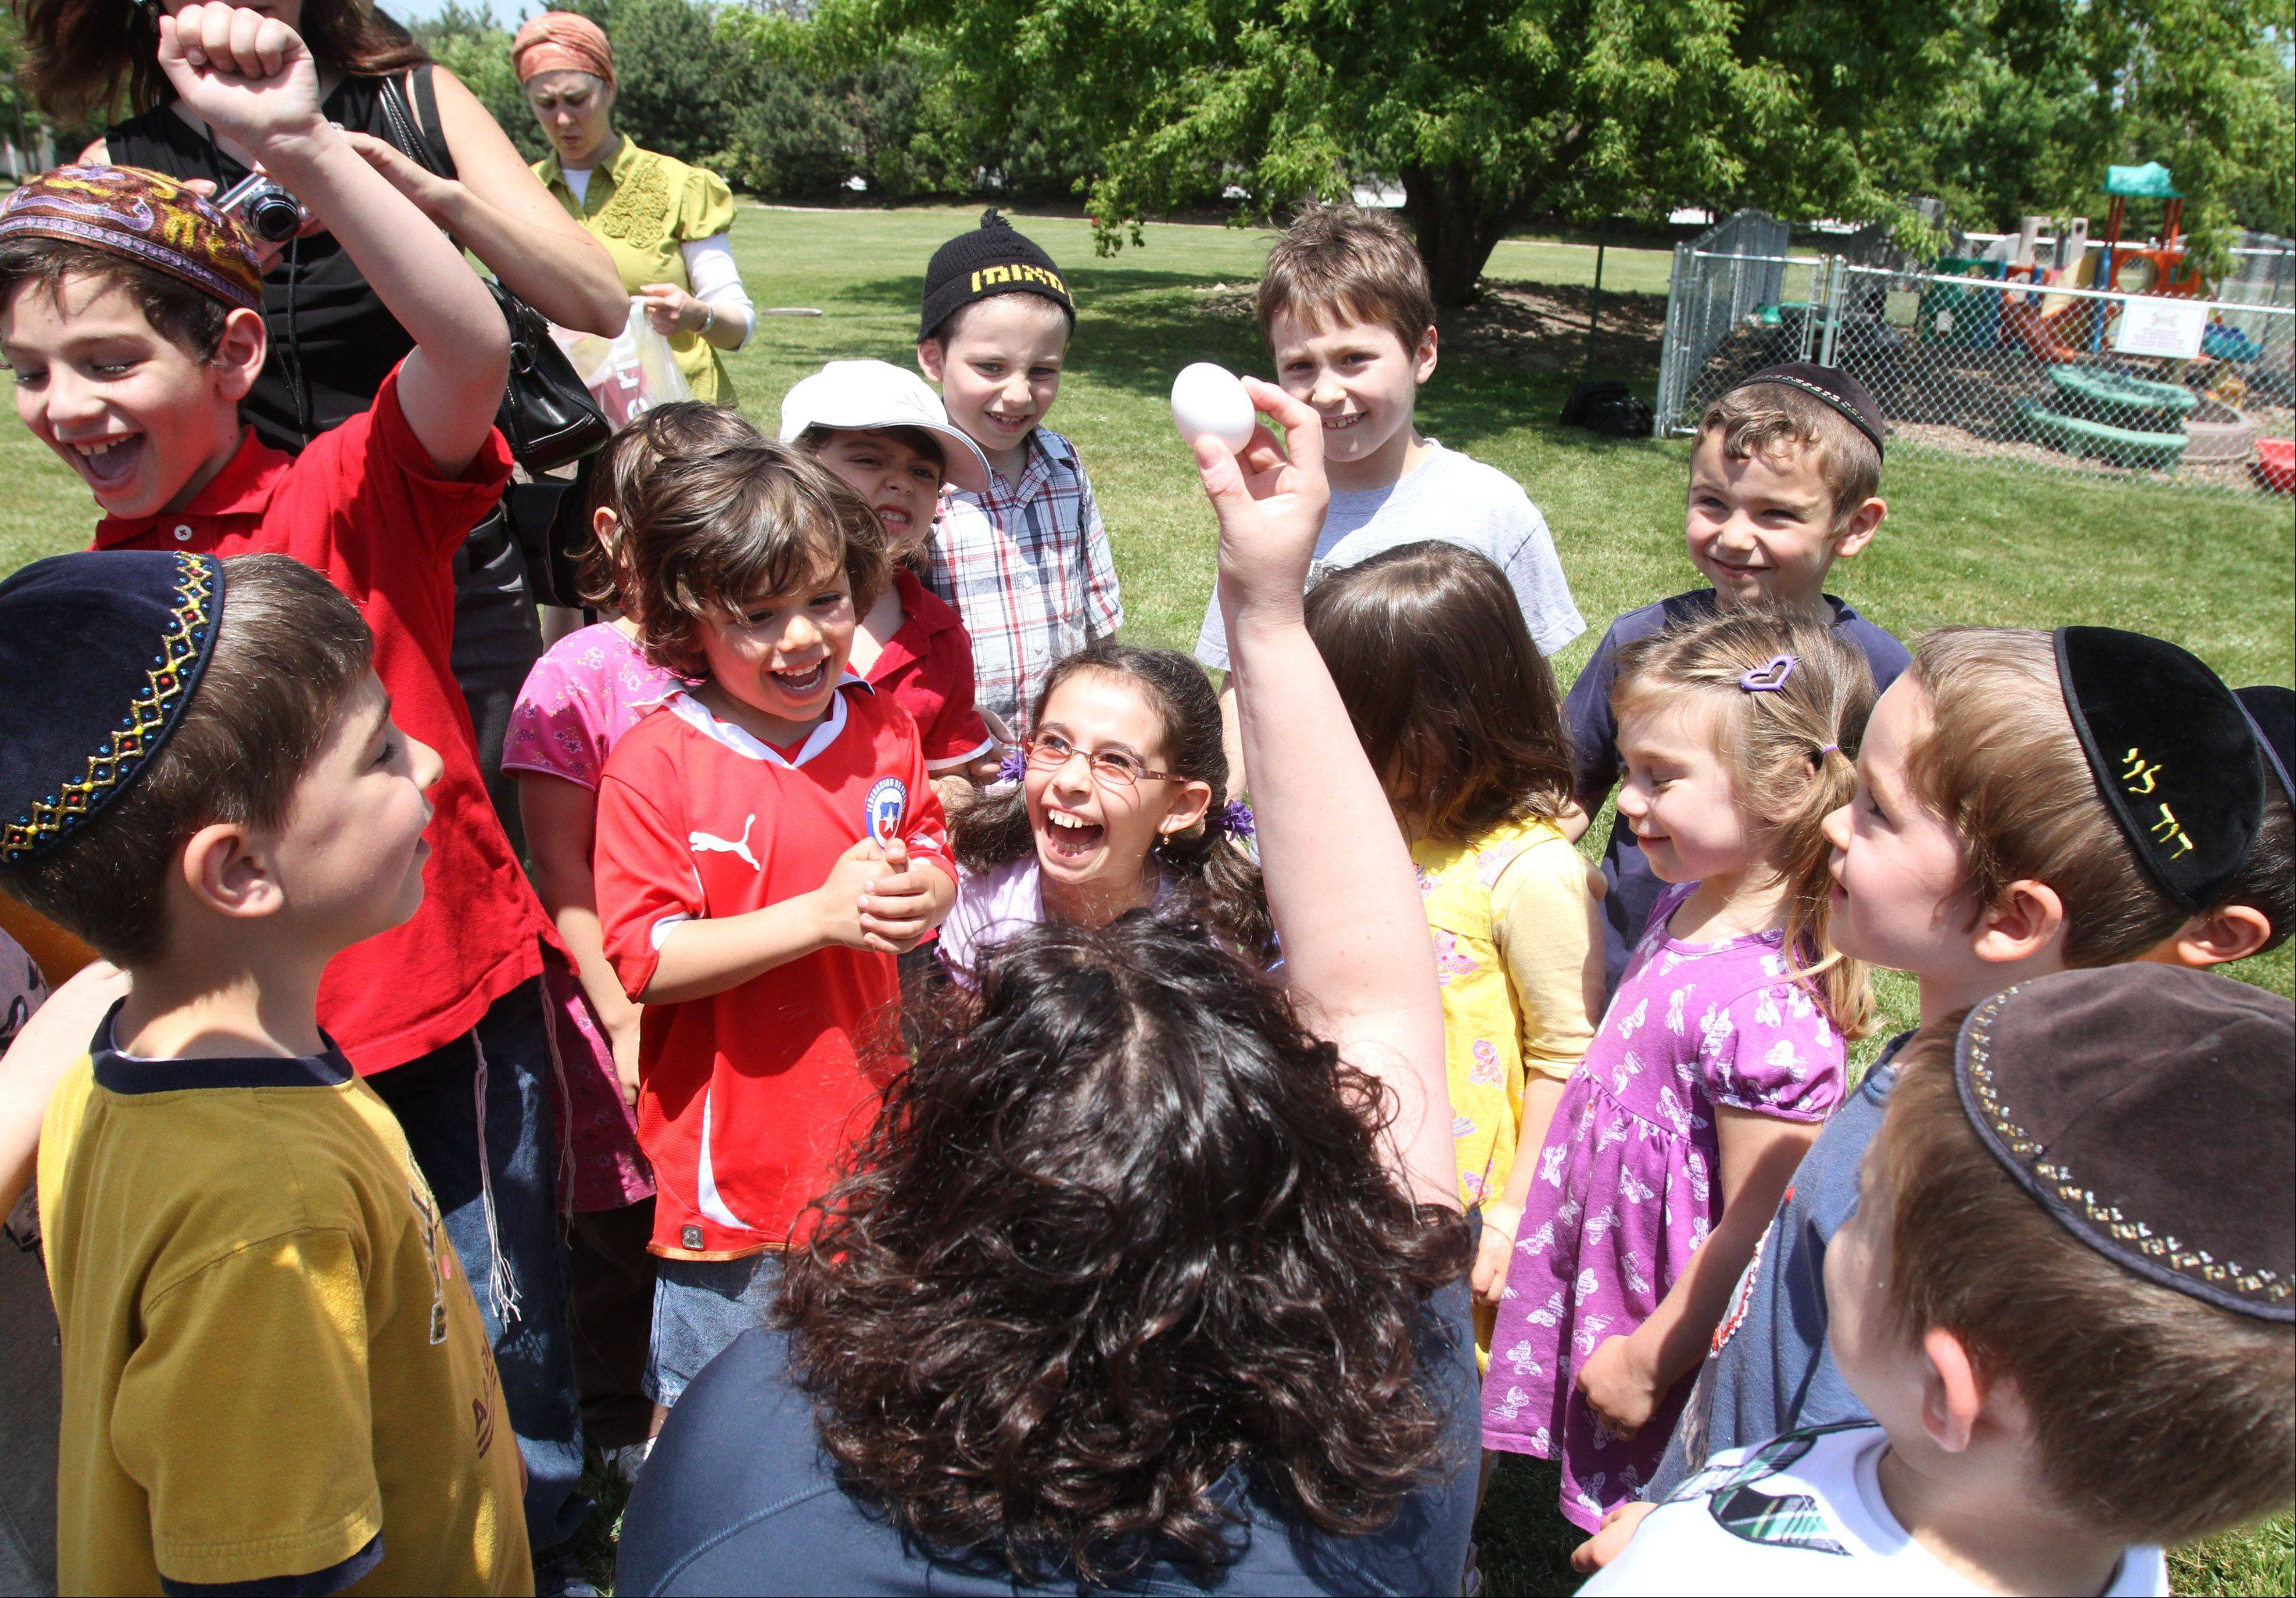 Students at Torah Academy of Buffalo Grove cheer as science coordinator Kimberly Friedman holds up an egg that survived the great egg drop at the school in Buffalo Grove on Thursday, May 24. The students designed and made protective housing for an egg that was then dropped to test if the egg broke.